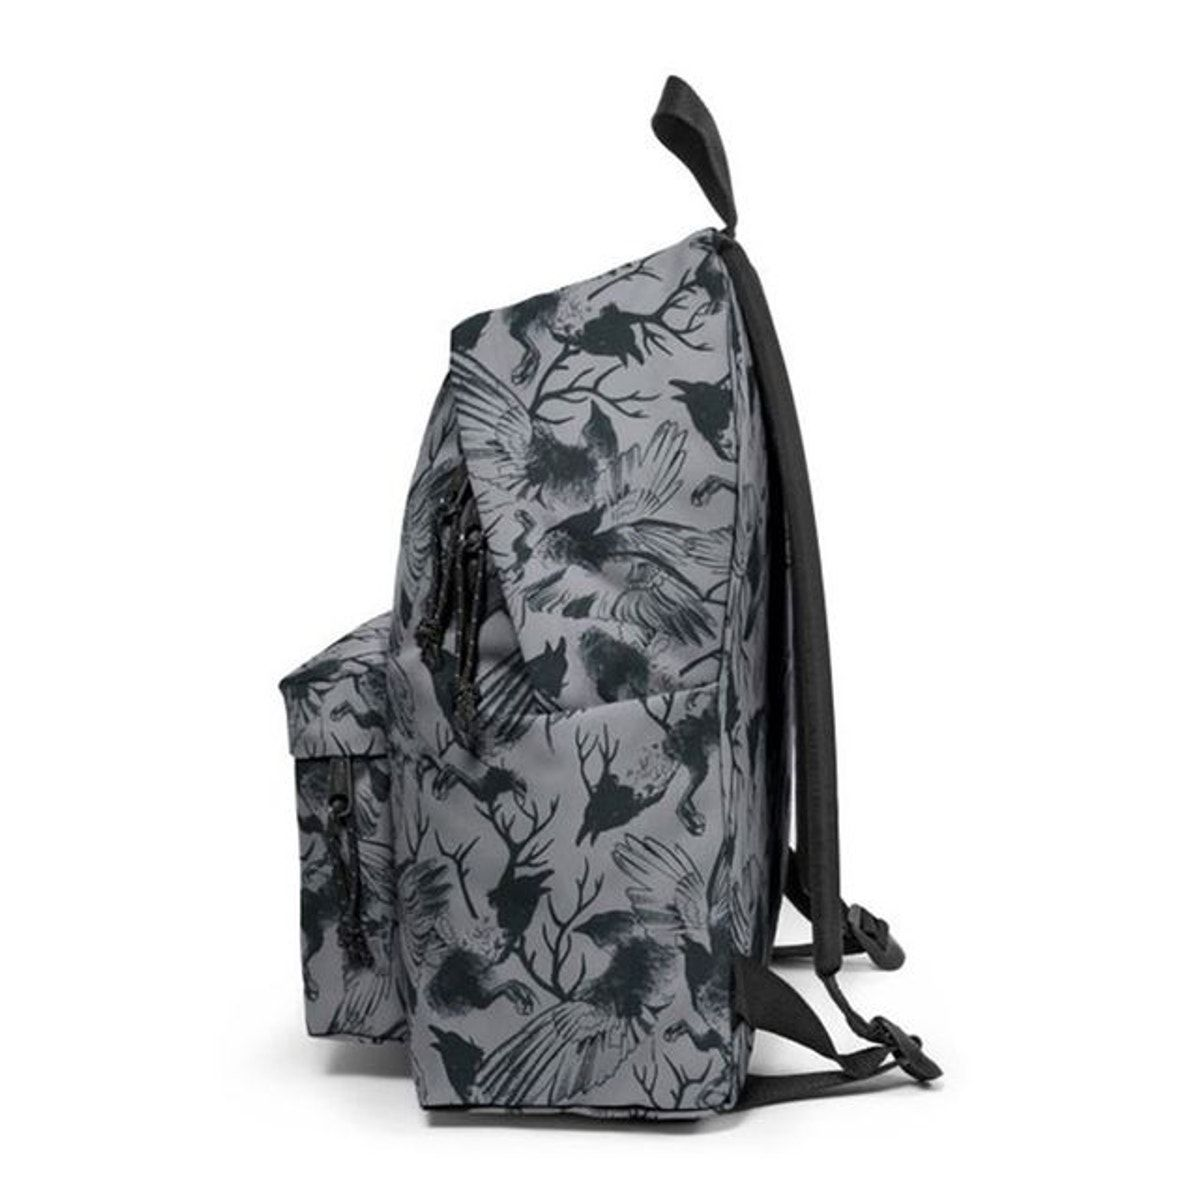 Sac A Dos V015367 Synthetique Authentic Padded Pak R Taille Taille Unique In 2019 Products Sac Sac A Dos Eastpak Eastpak Padded